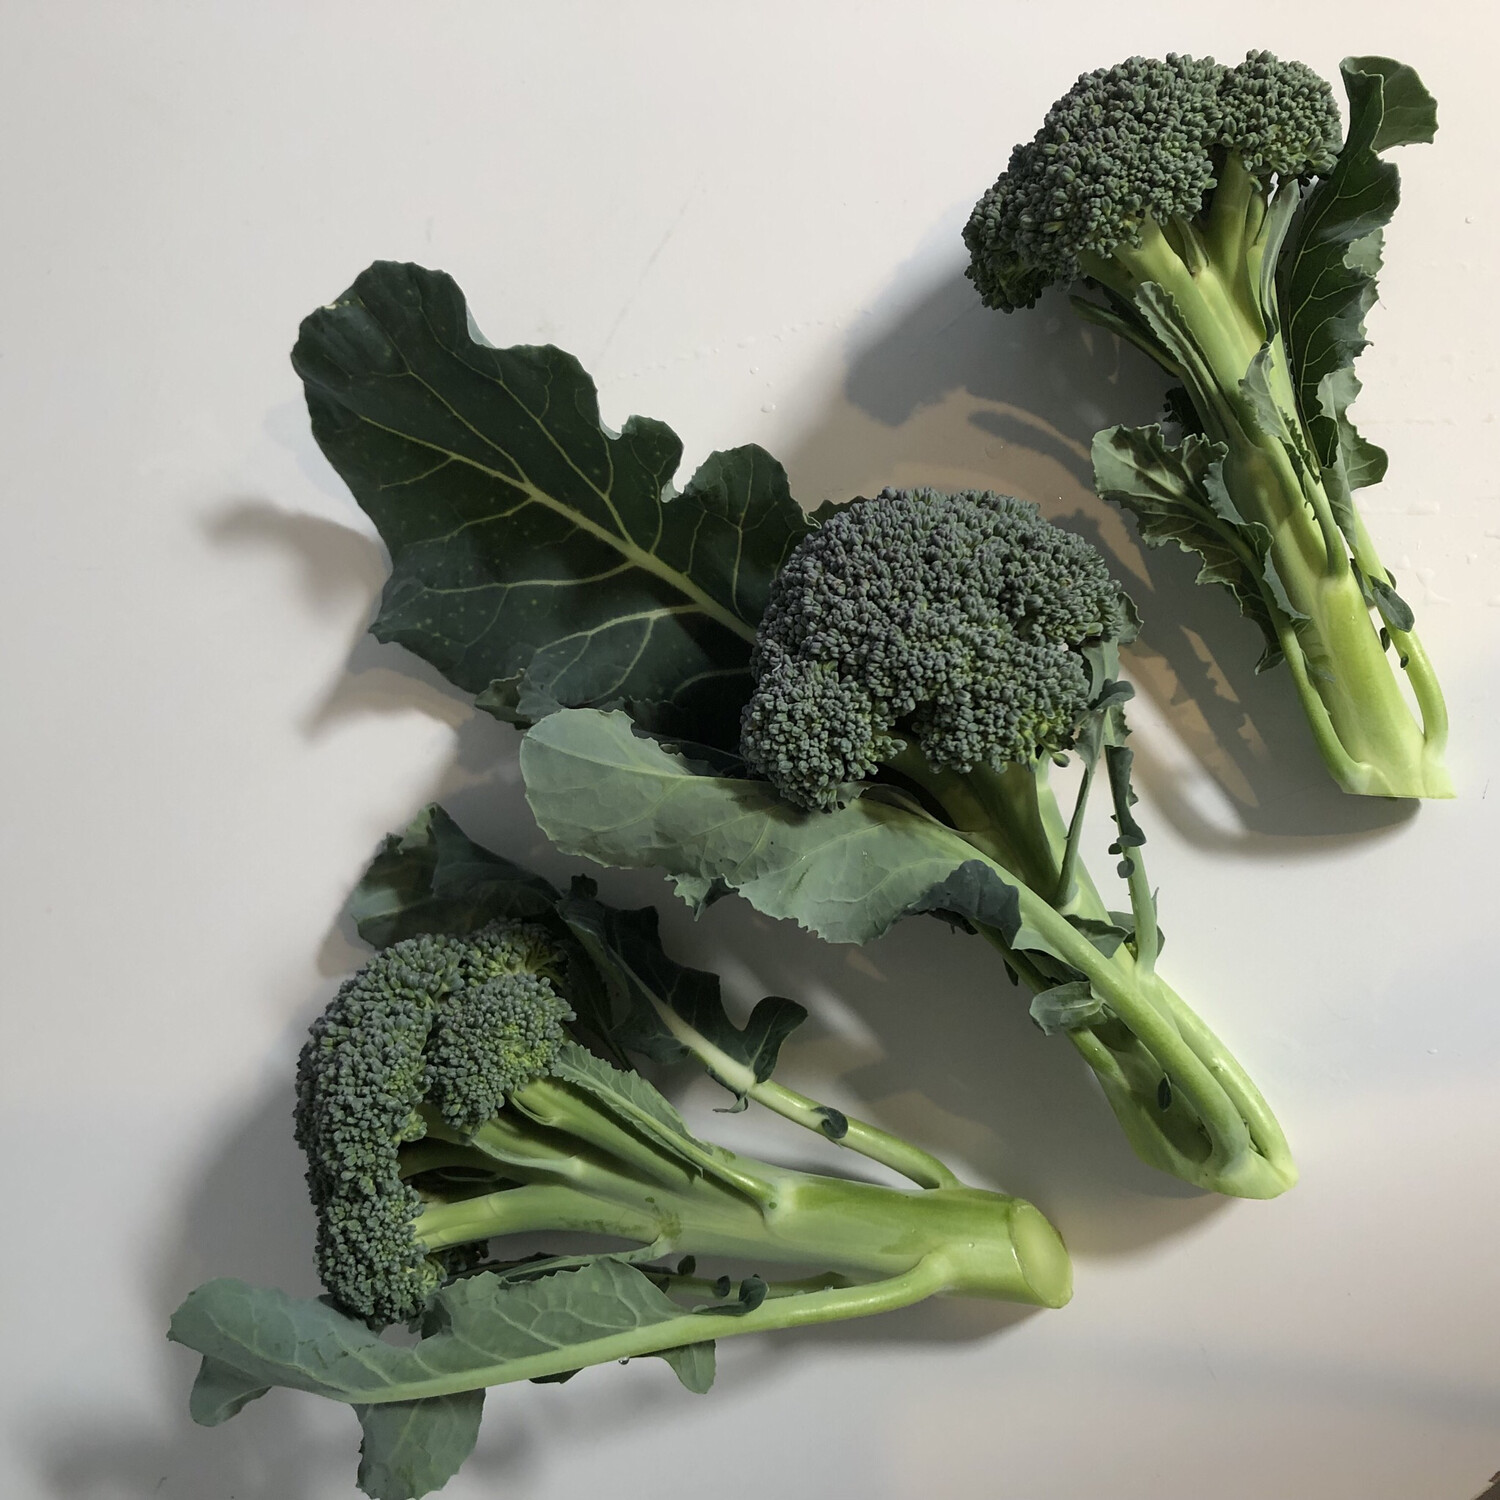 Green Magic Broccoli - 1lb - $4